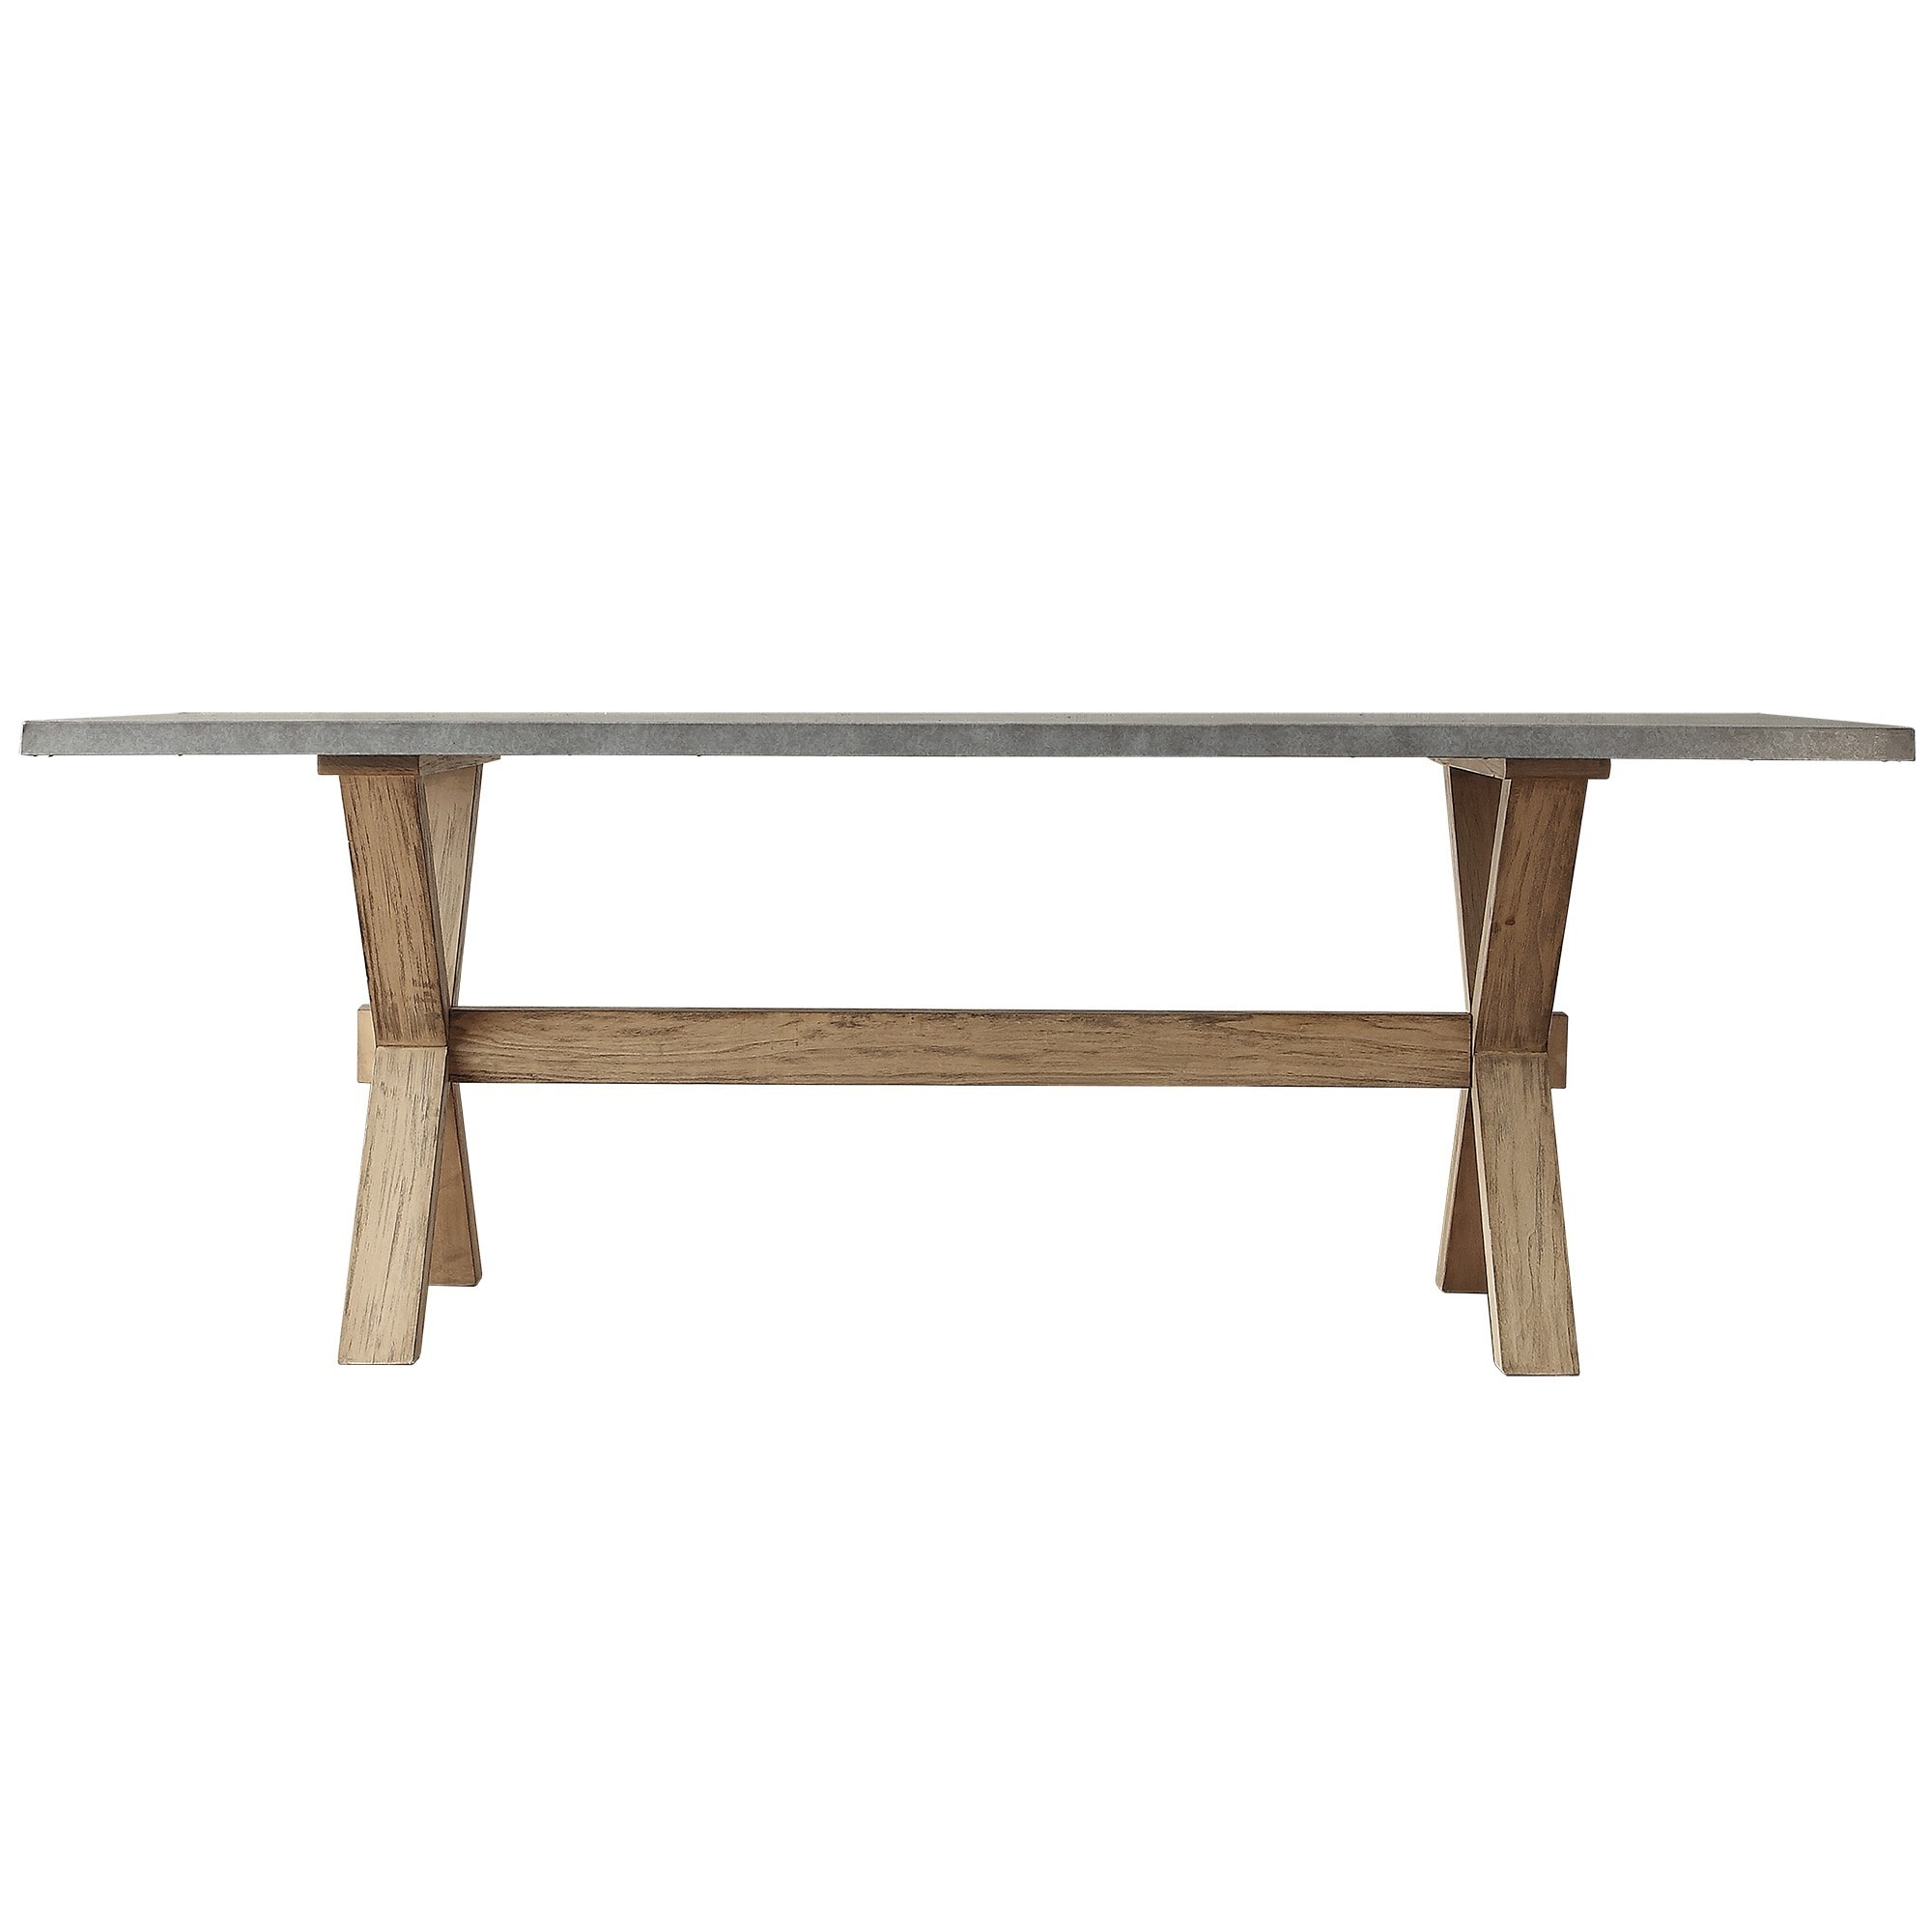 Aberdeen Industrial Zinc Top Weathered Oak Trestle Dining Table By INSPIRE  Q Artisan   Free Shipping Today   Overstock.com   16980235